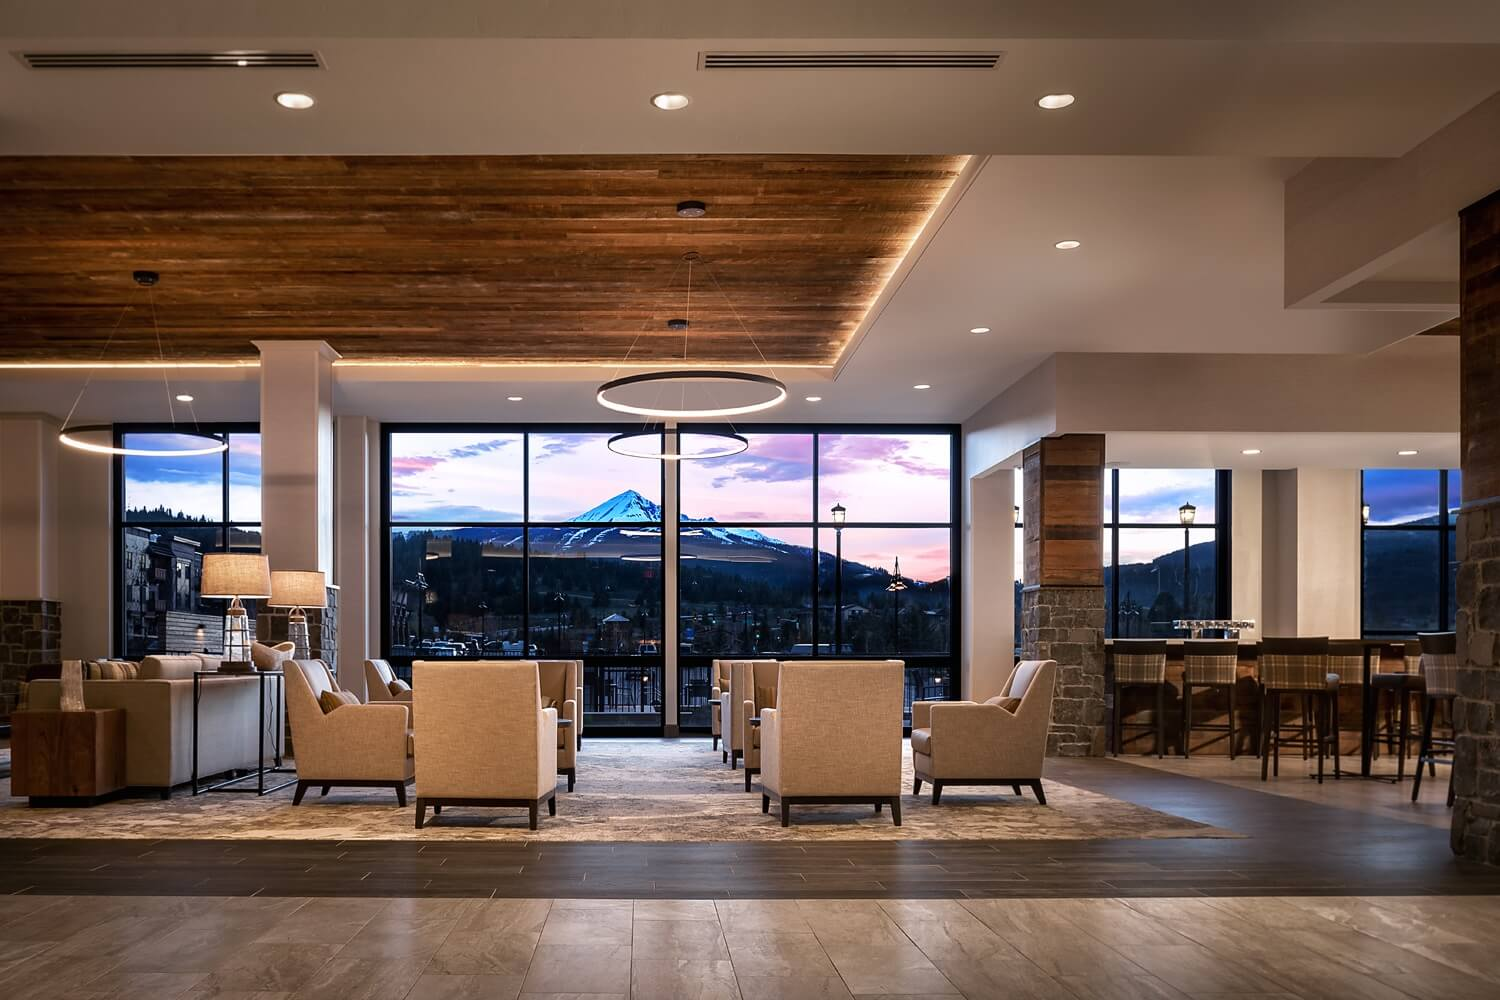 Wilson Hotel Lobby with mountain views.